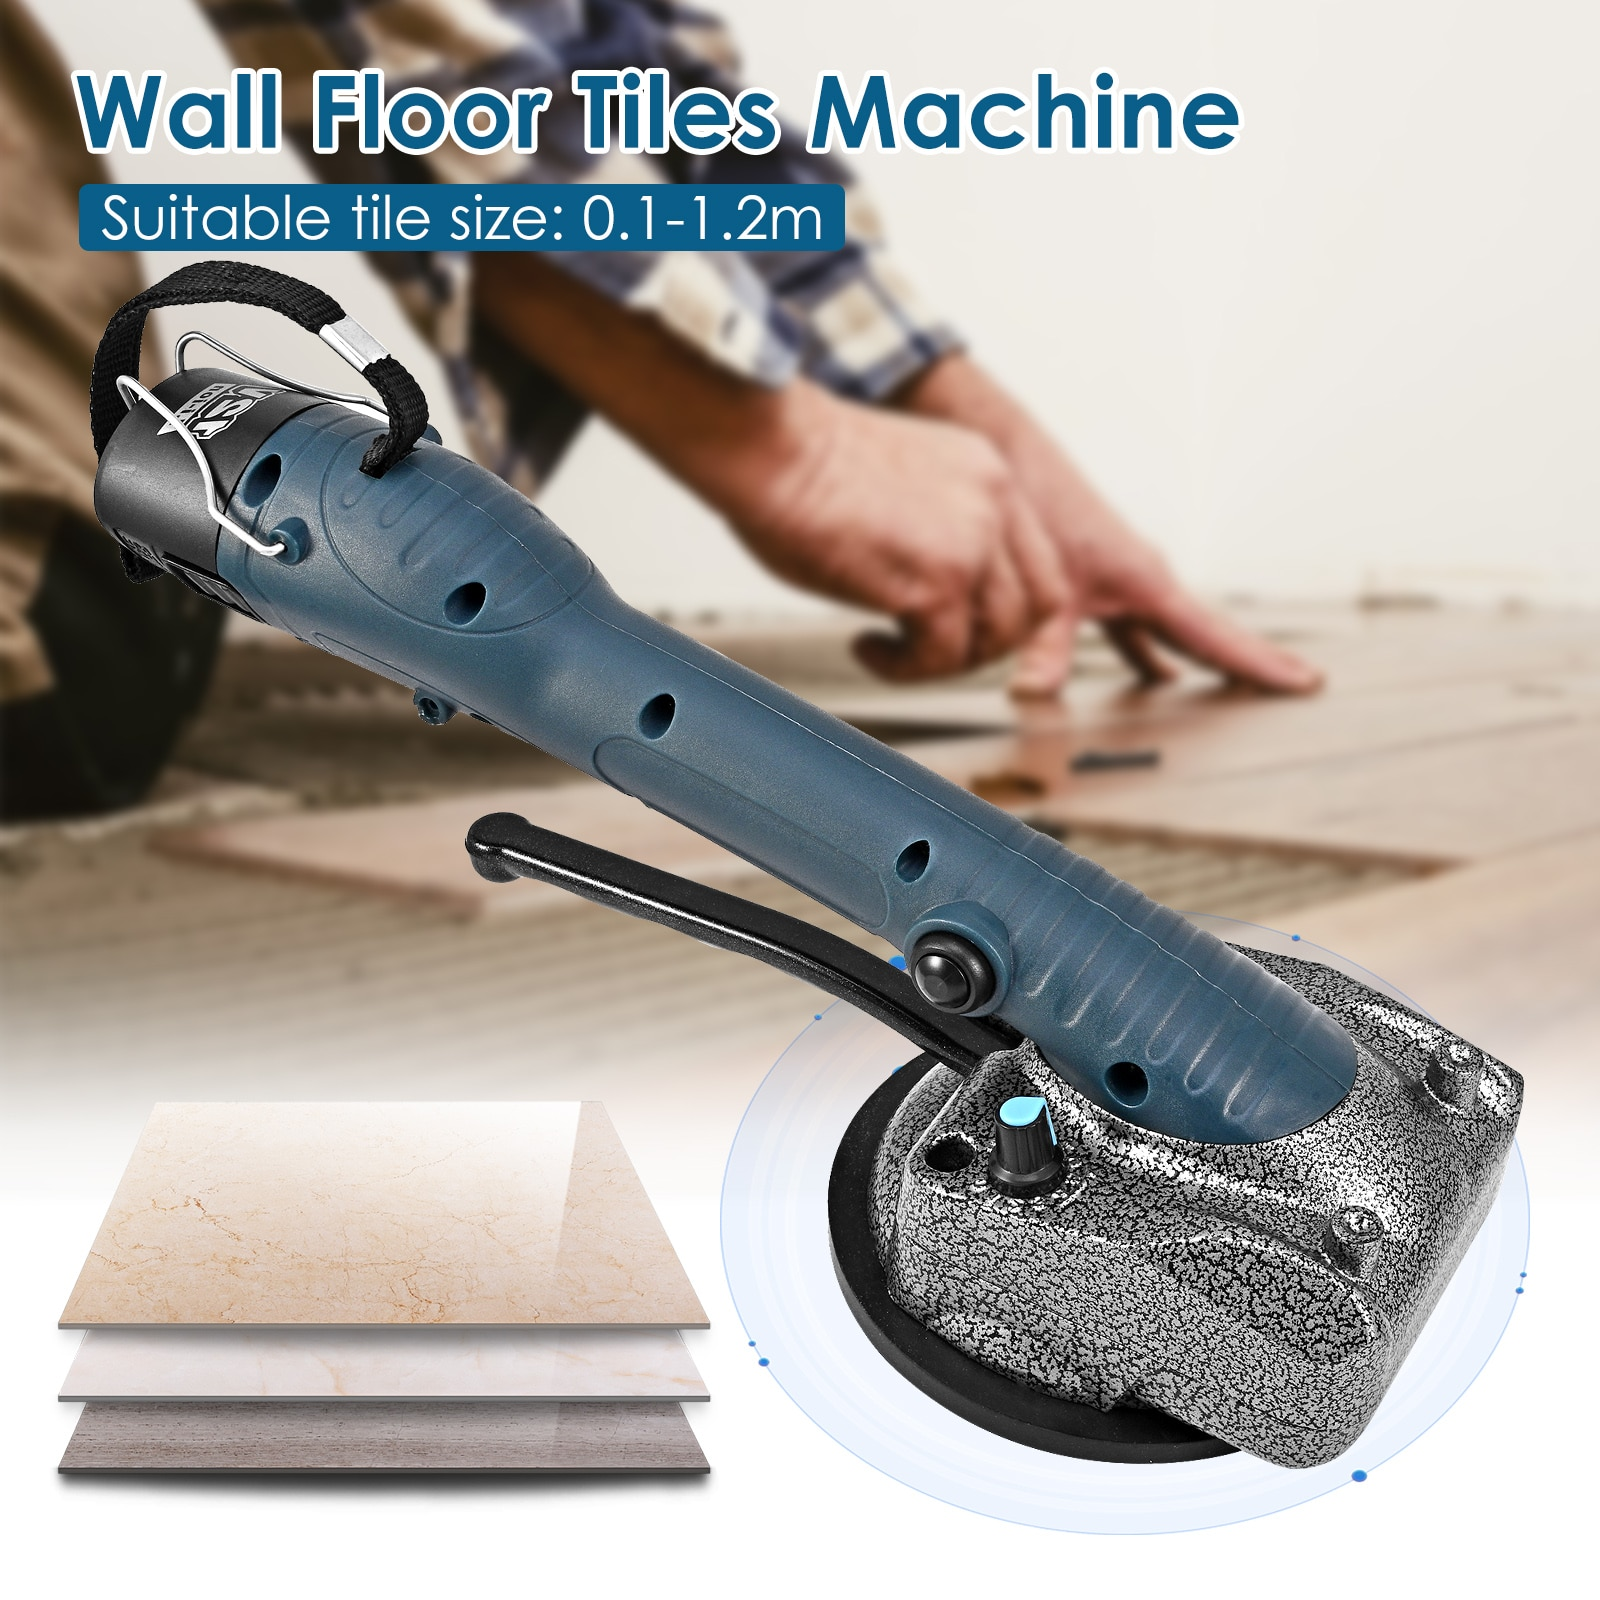 Electric Tile Tiling Machine 10-150Hz Wall Floor Tiles Laying Machine Tile Tiling Machine Wall Floor Tiles Laying Vibrating Tool